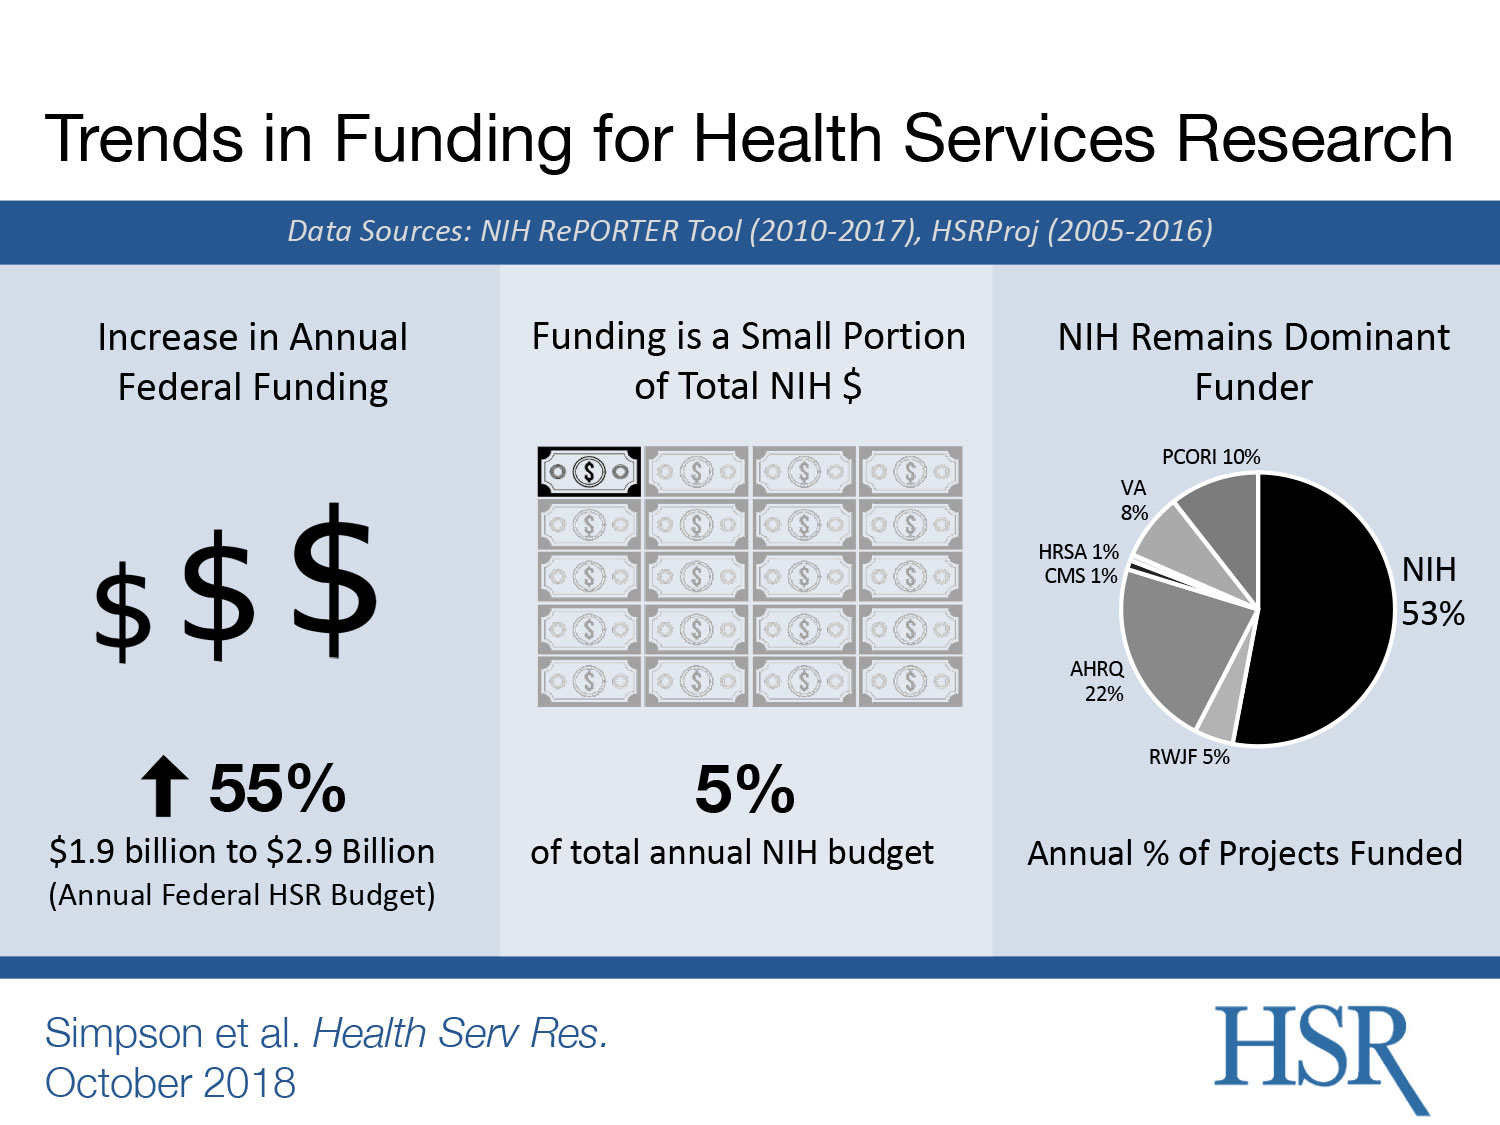 trends in health services research funding infographic